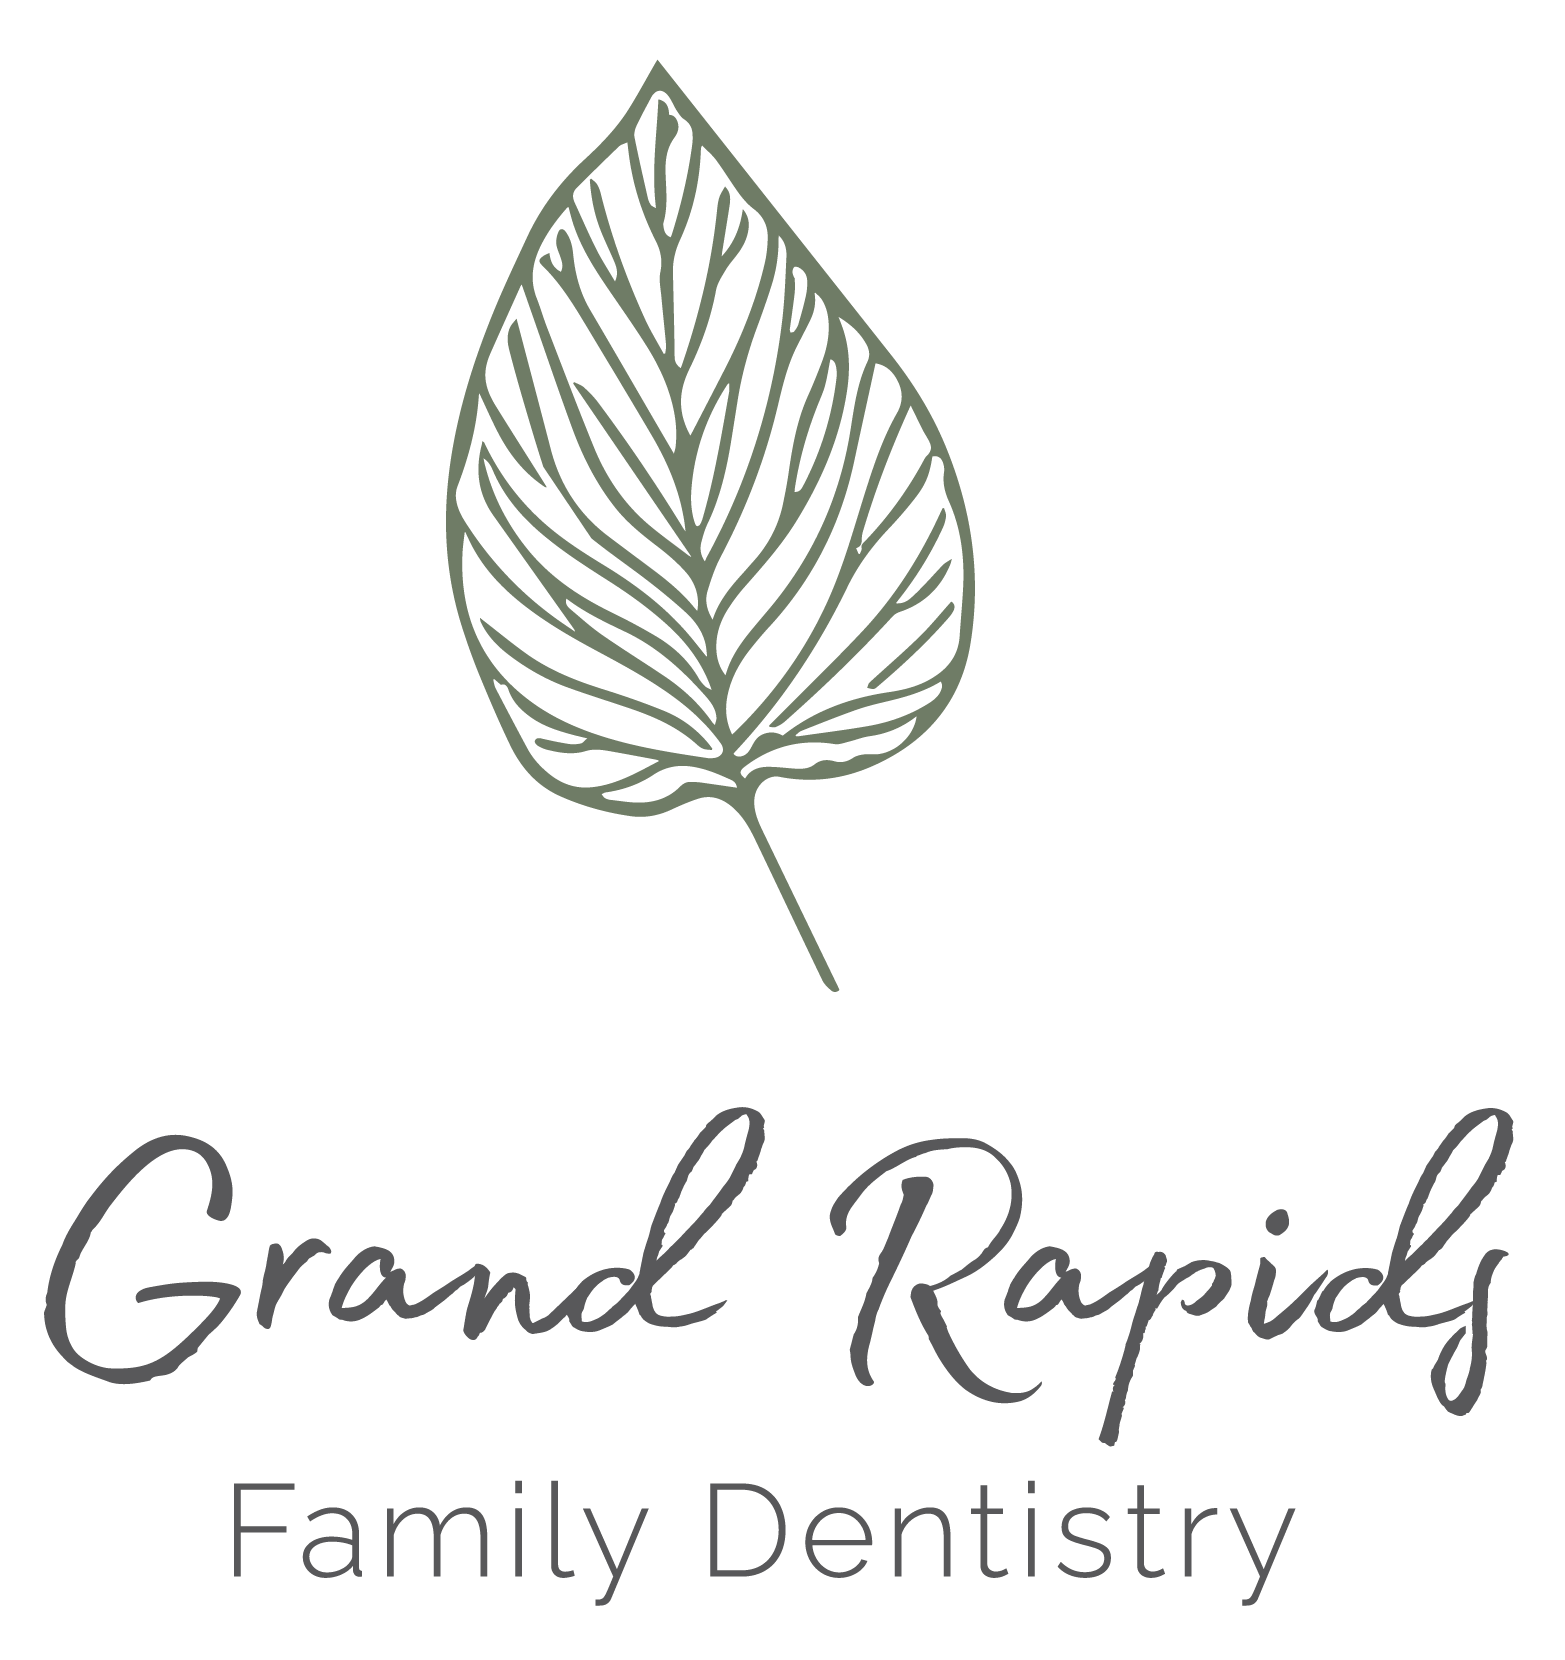 Grand Rapids Family Dentistry_Stacked Logo-Green - Charcoal